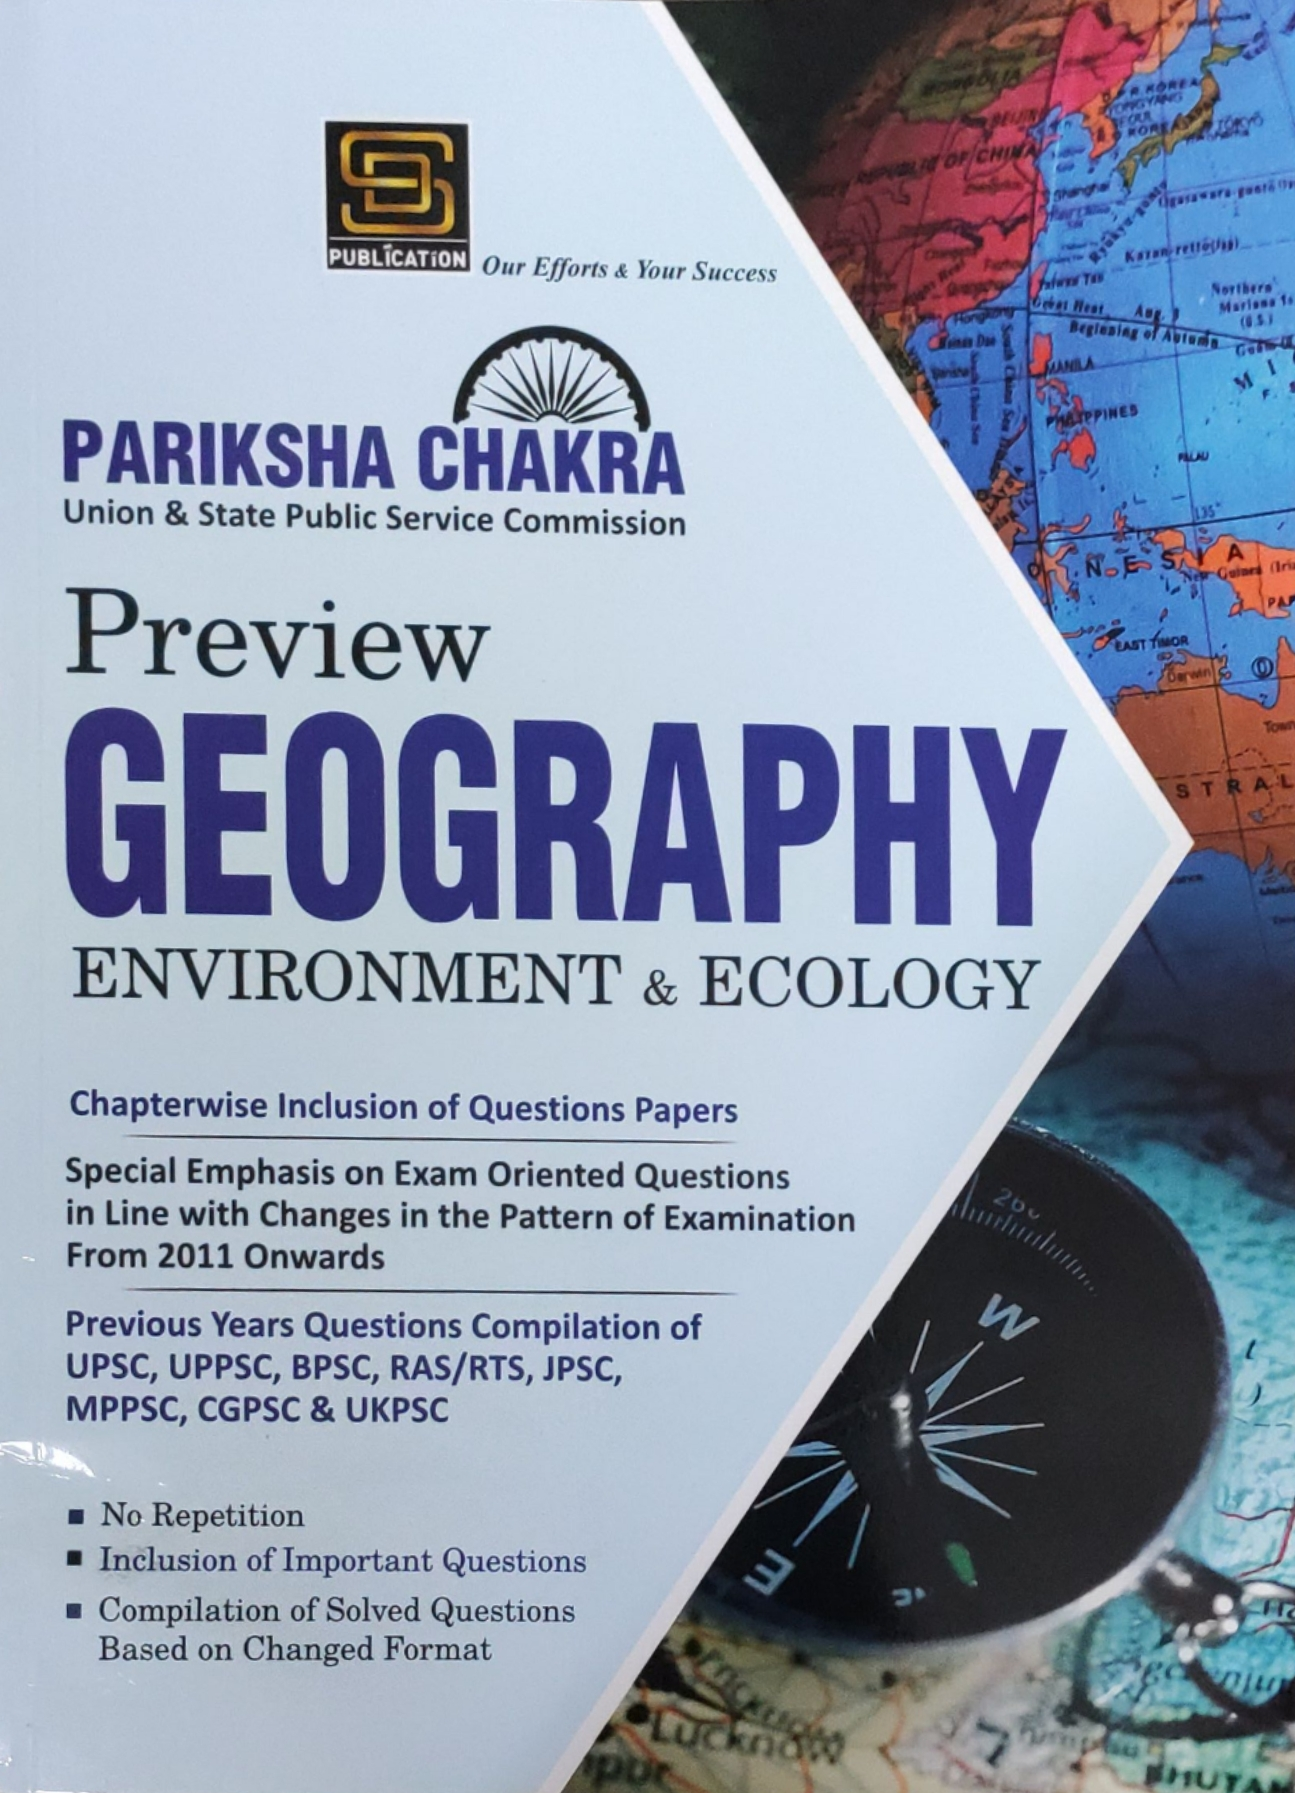 SD PUBLICATION PREVIEW GEOGRAPHY ENVIRONMENT ECOLOGY 2021